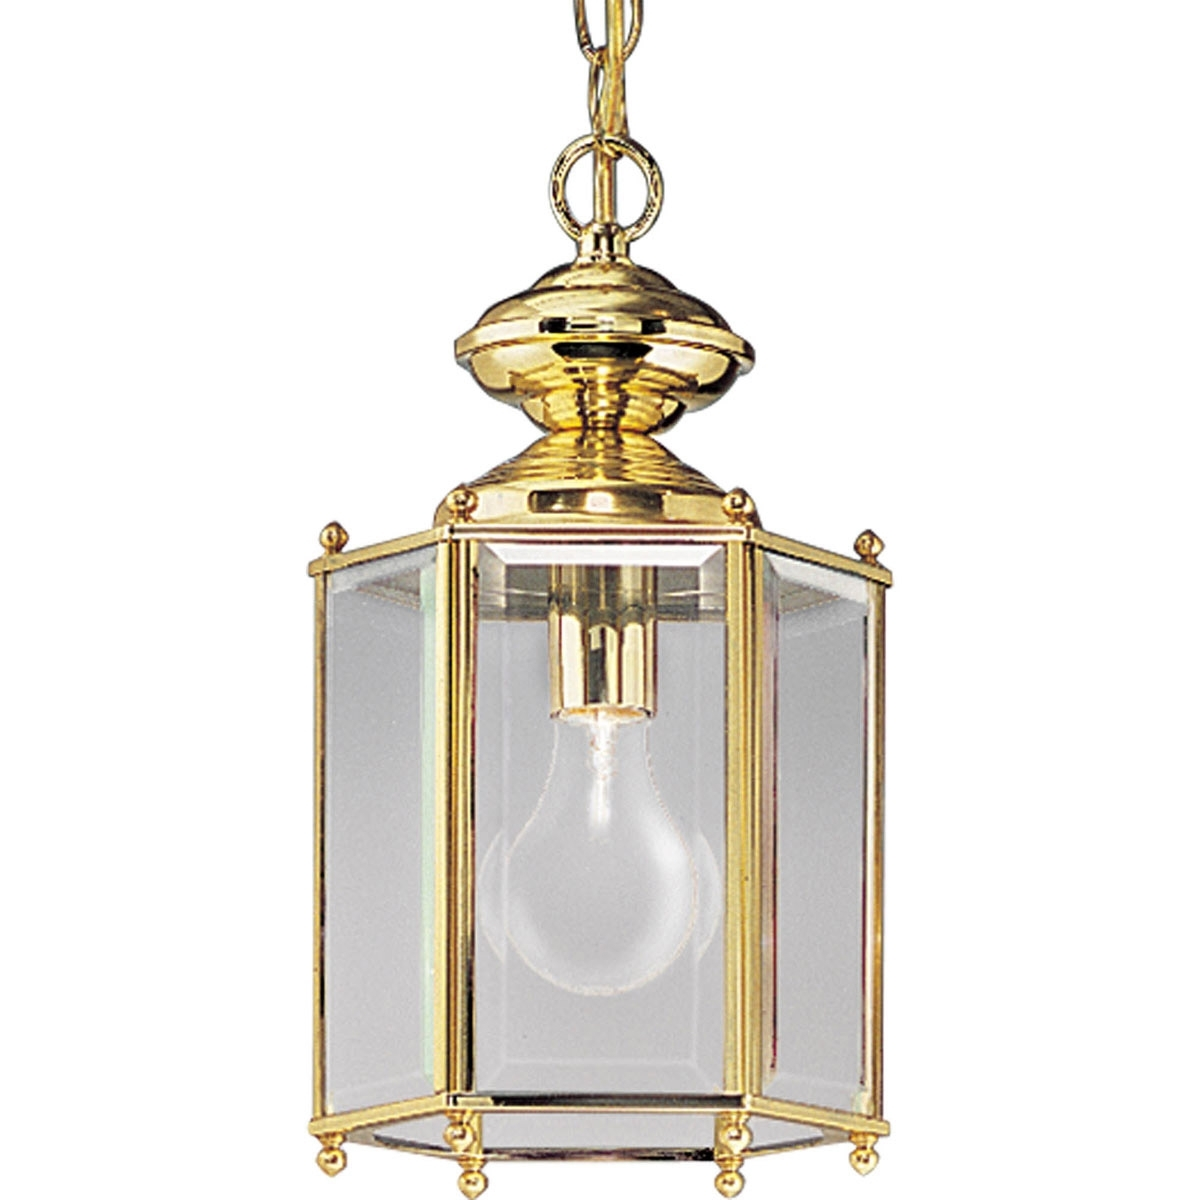 Polished Brass Outdoor Ceiling Lights With Regard To Recent Progress Lighting P5834 10 Beveled Glass Outdoor Ceiling Lights (View 9 of 20)